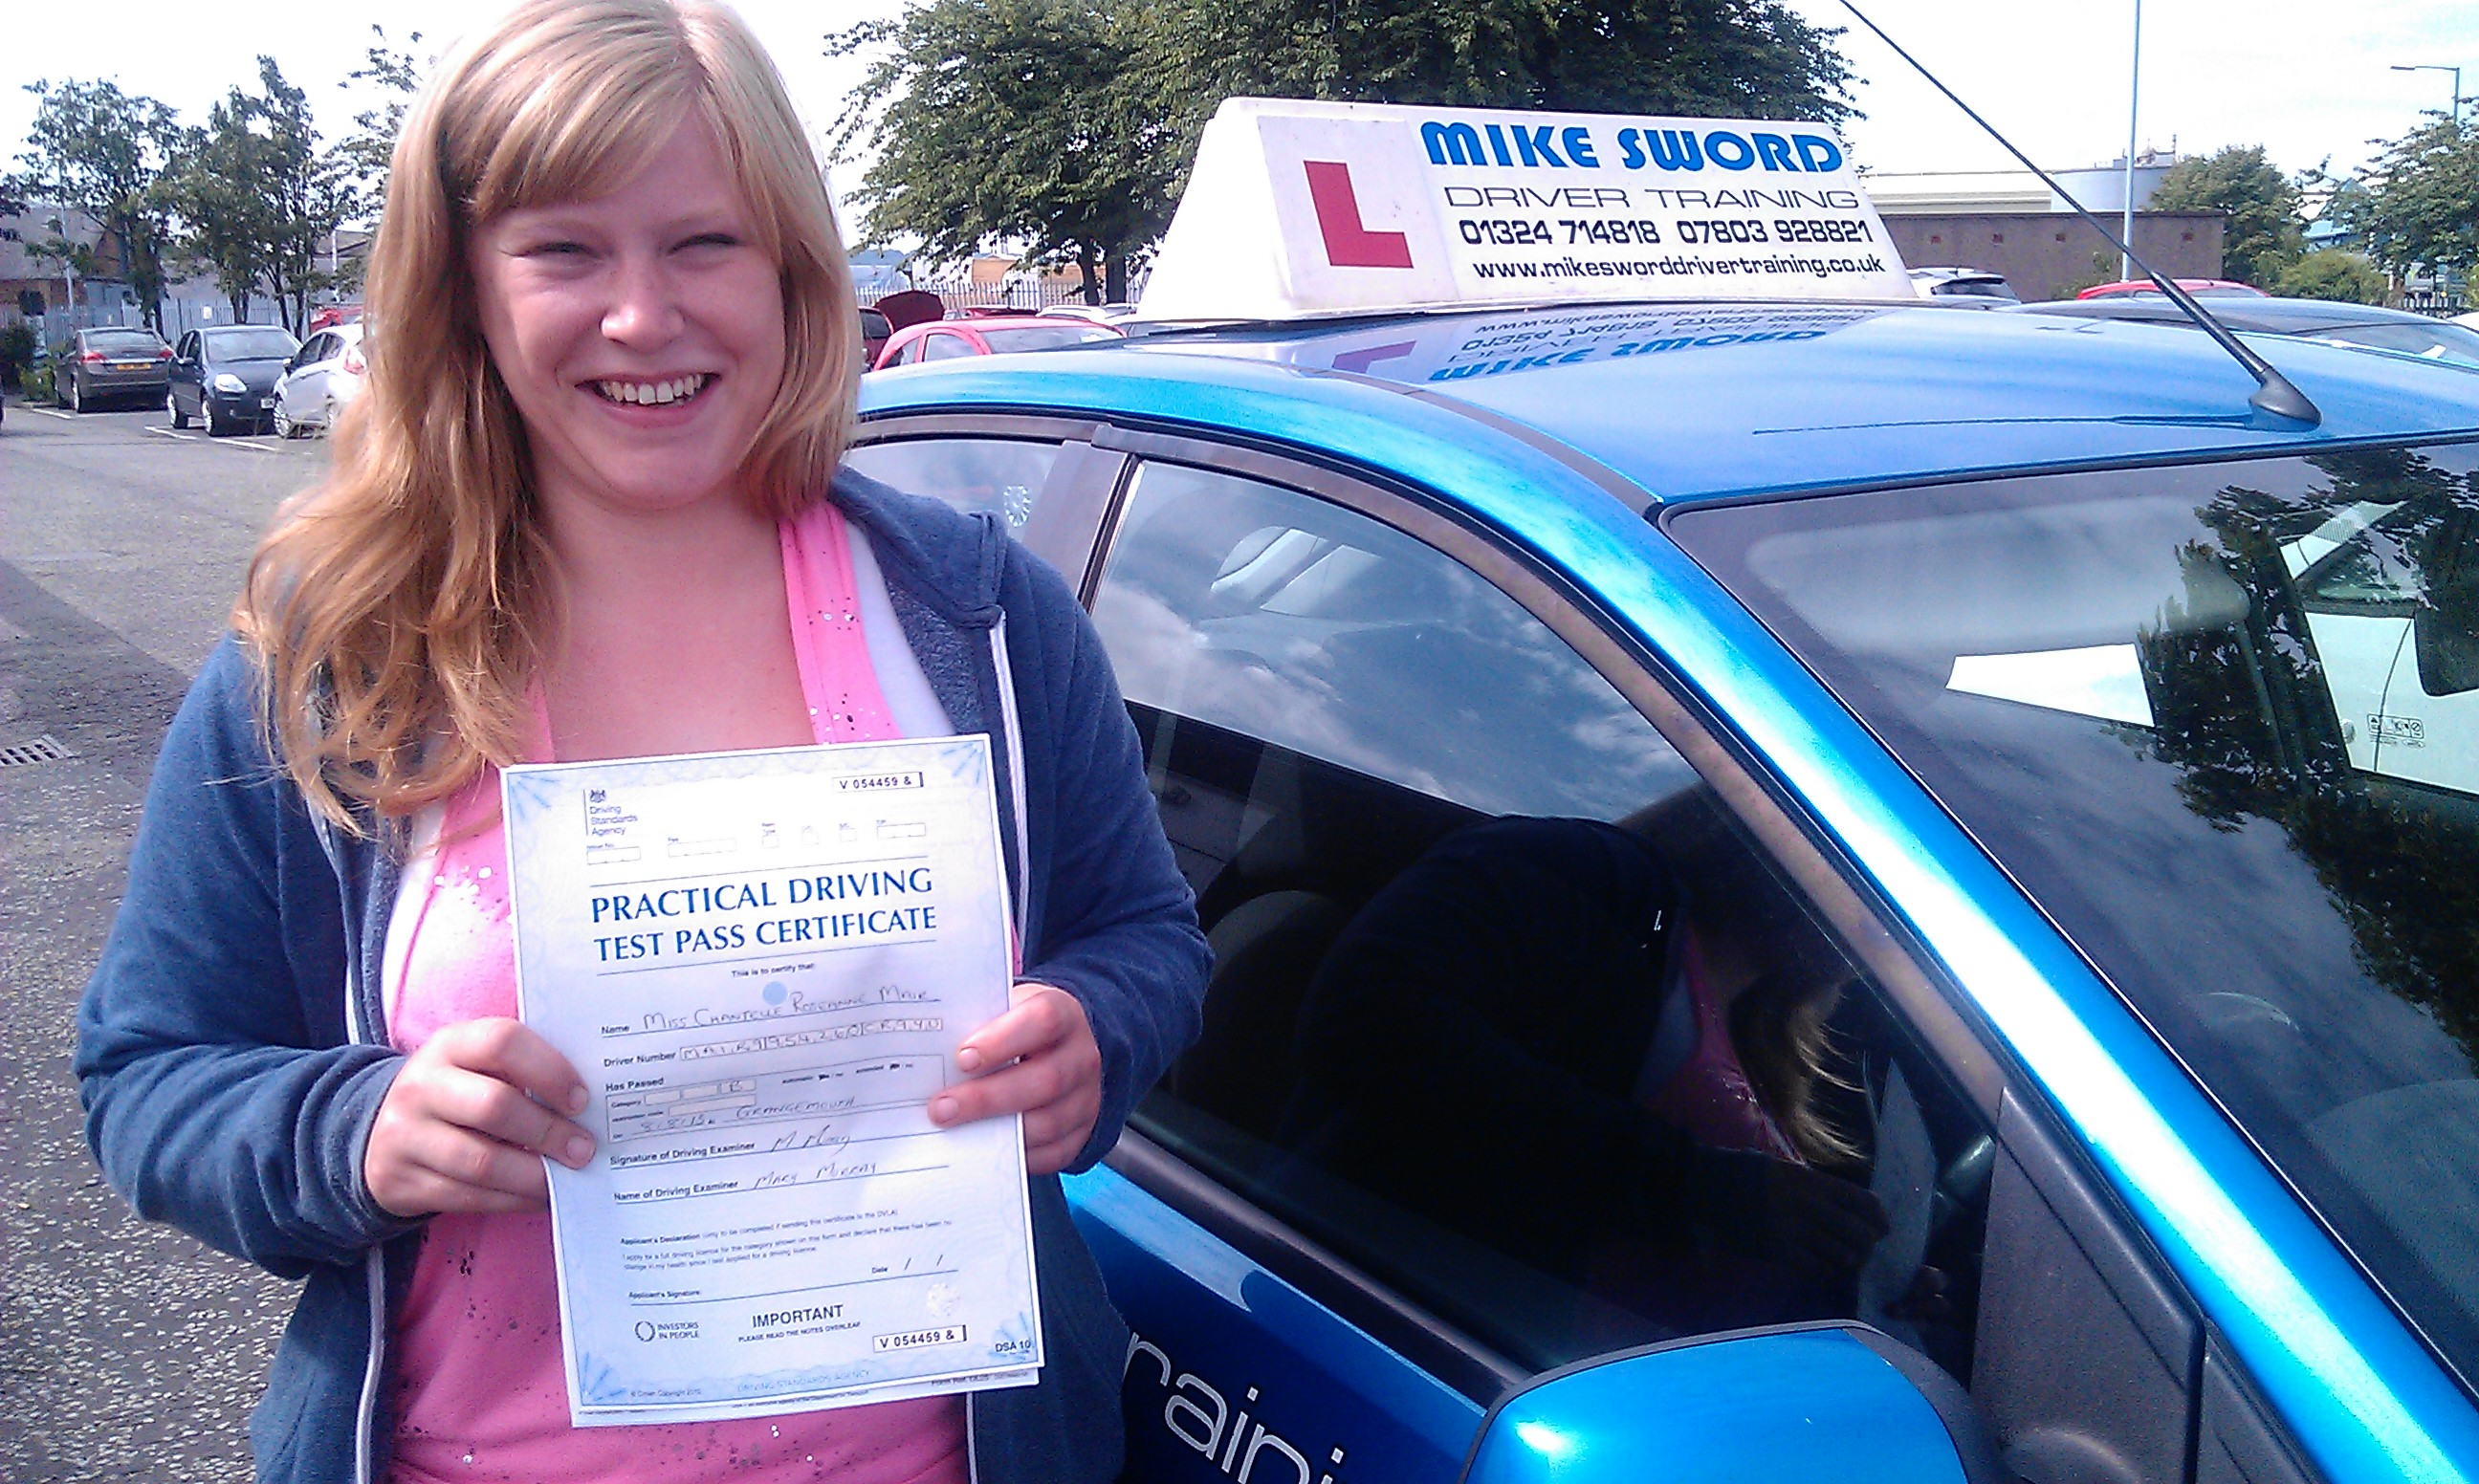 Chantelle Mair Mike Sword Driver Training Falkirk Driving